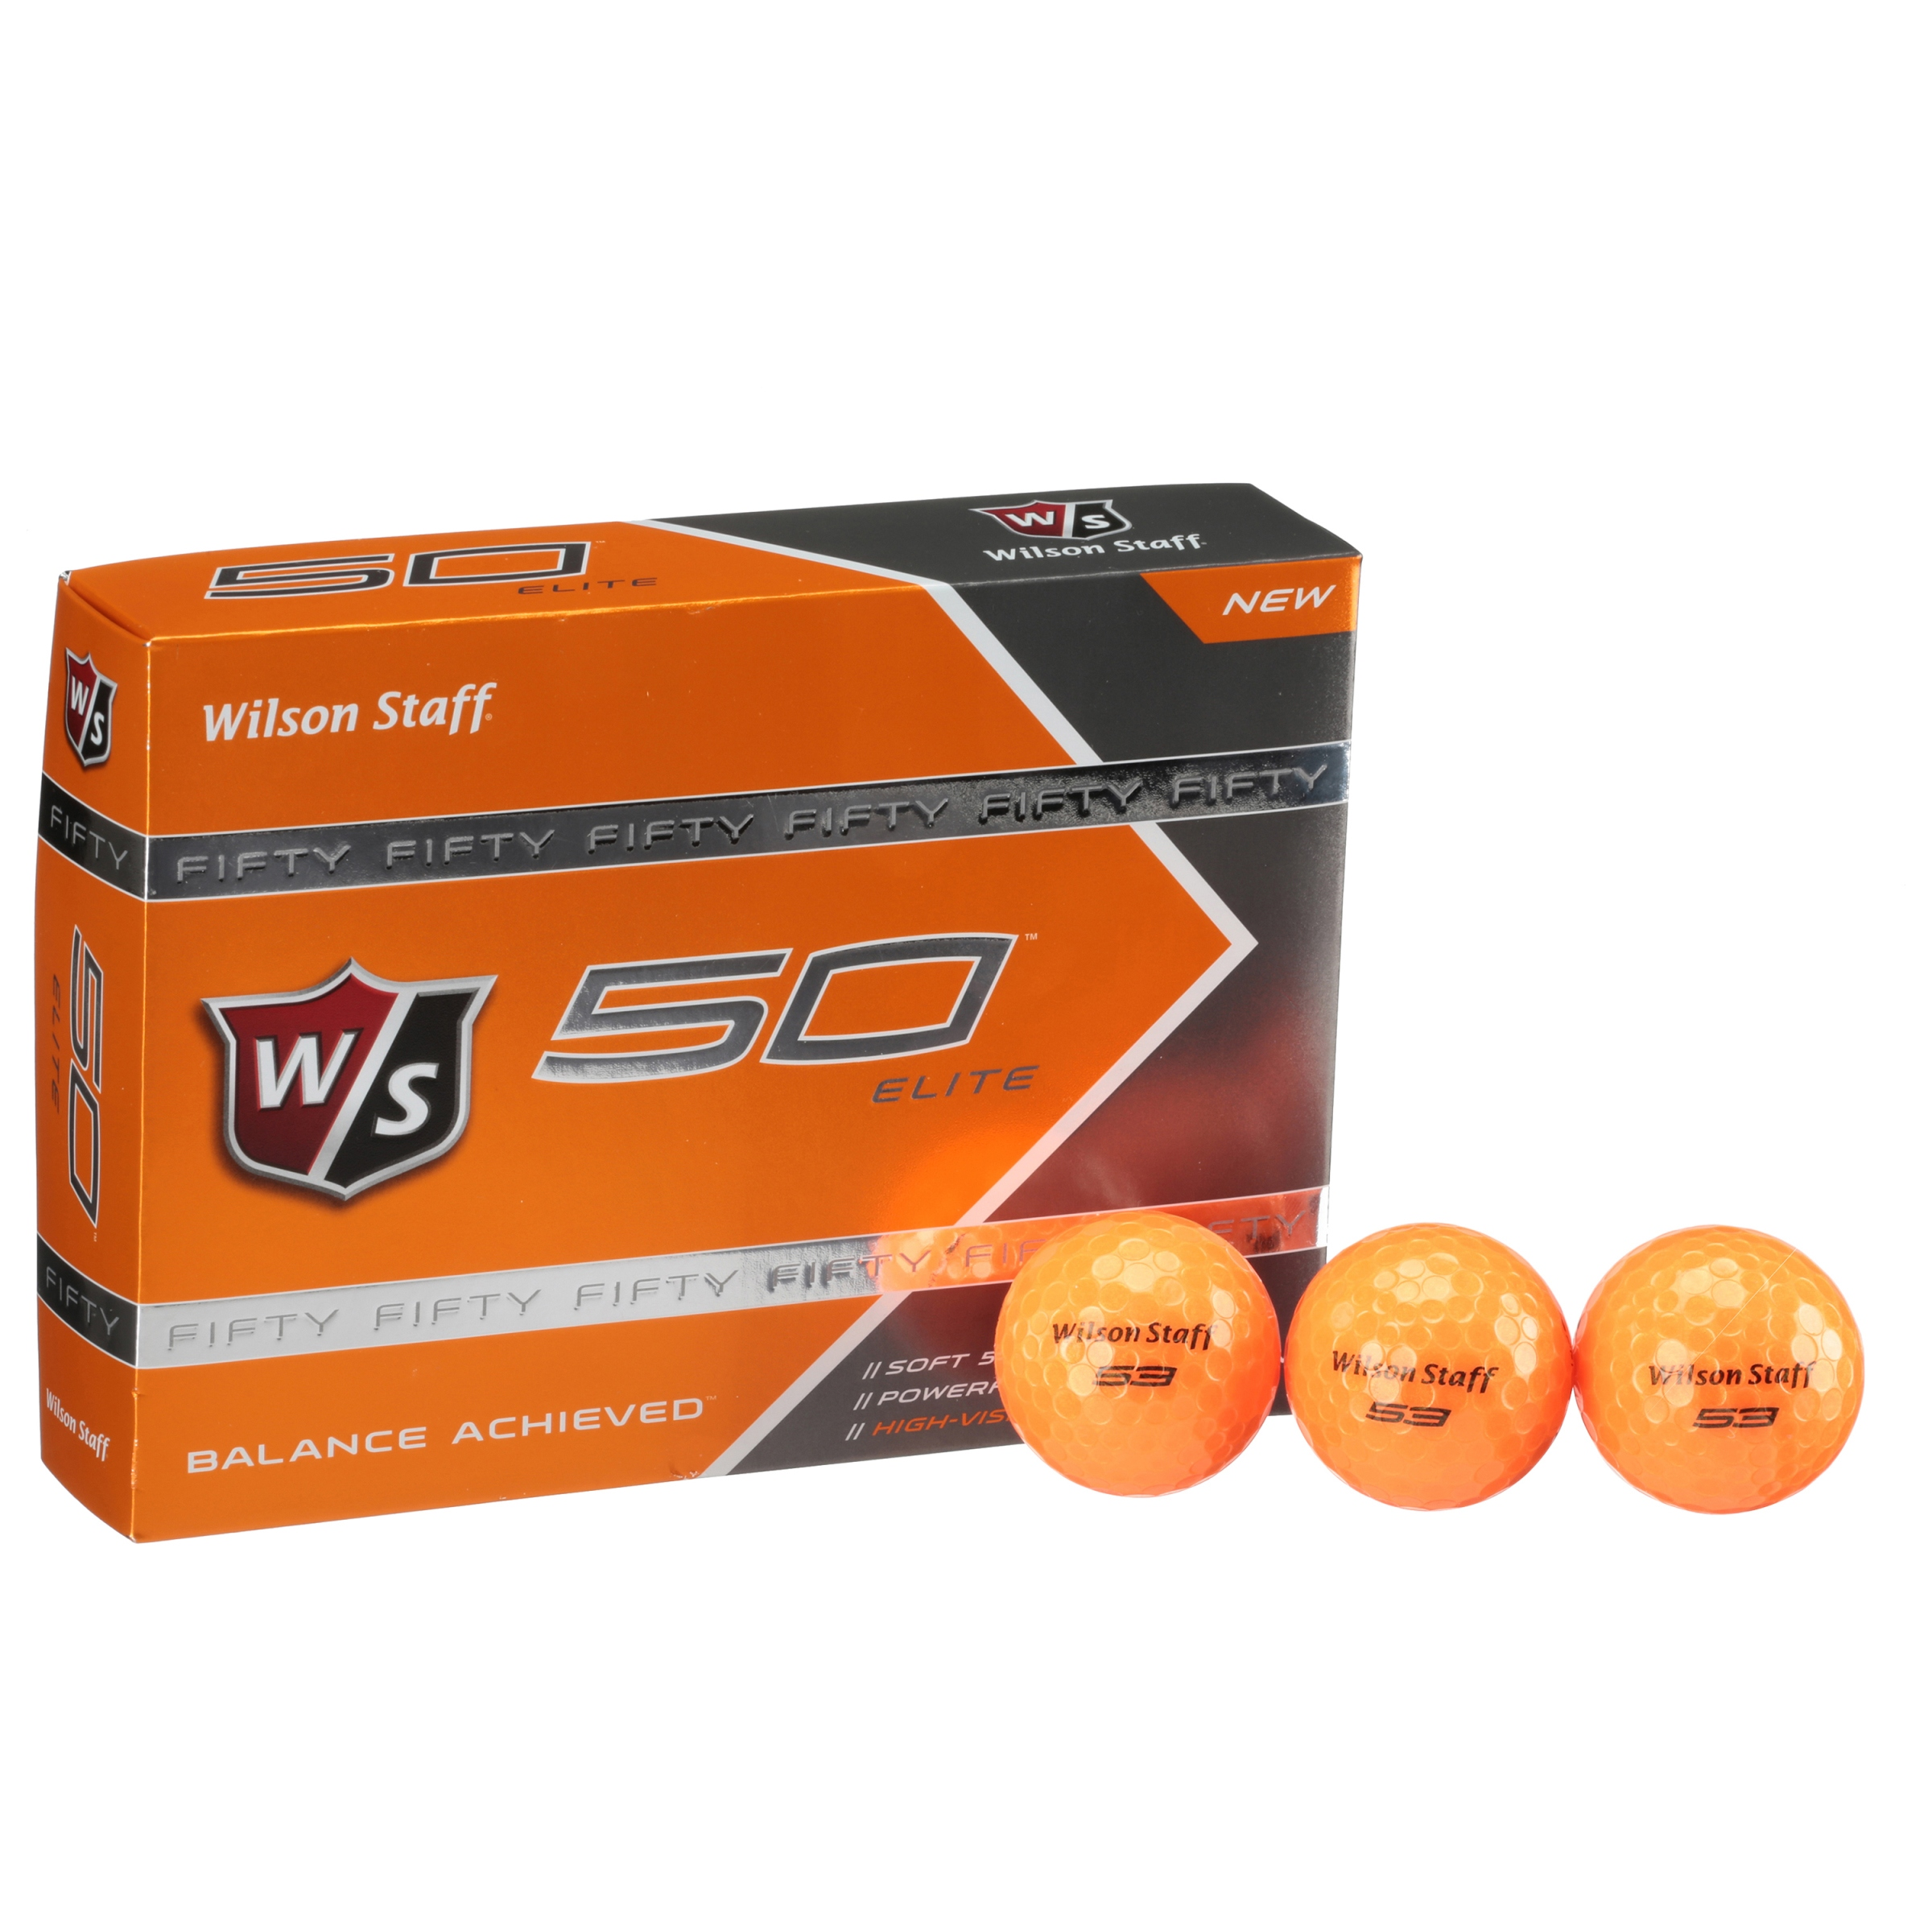 Wilson Staff 50 Elite High Visibility Orange Golf Balls 12 ct Box by Wilson Sporting Goods Co.